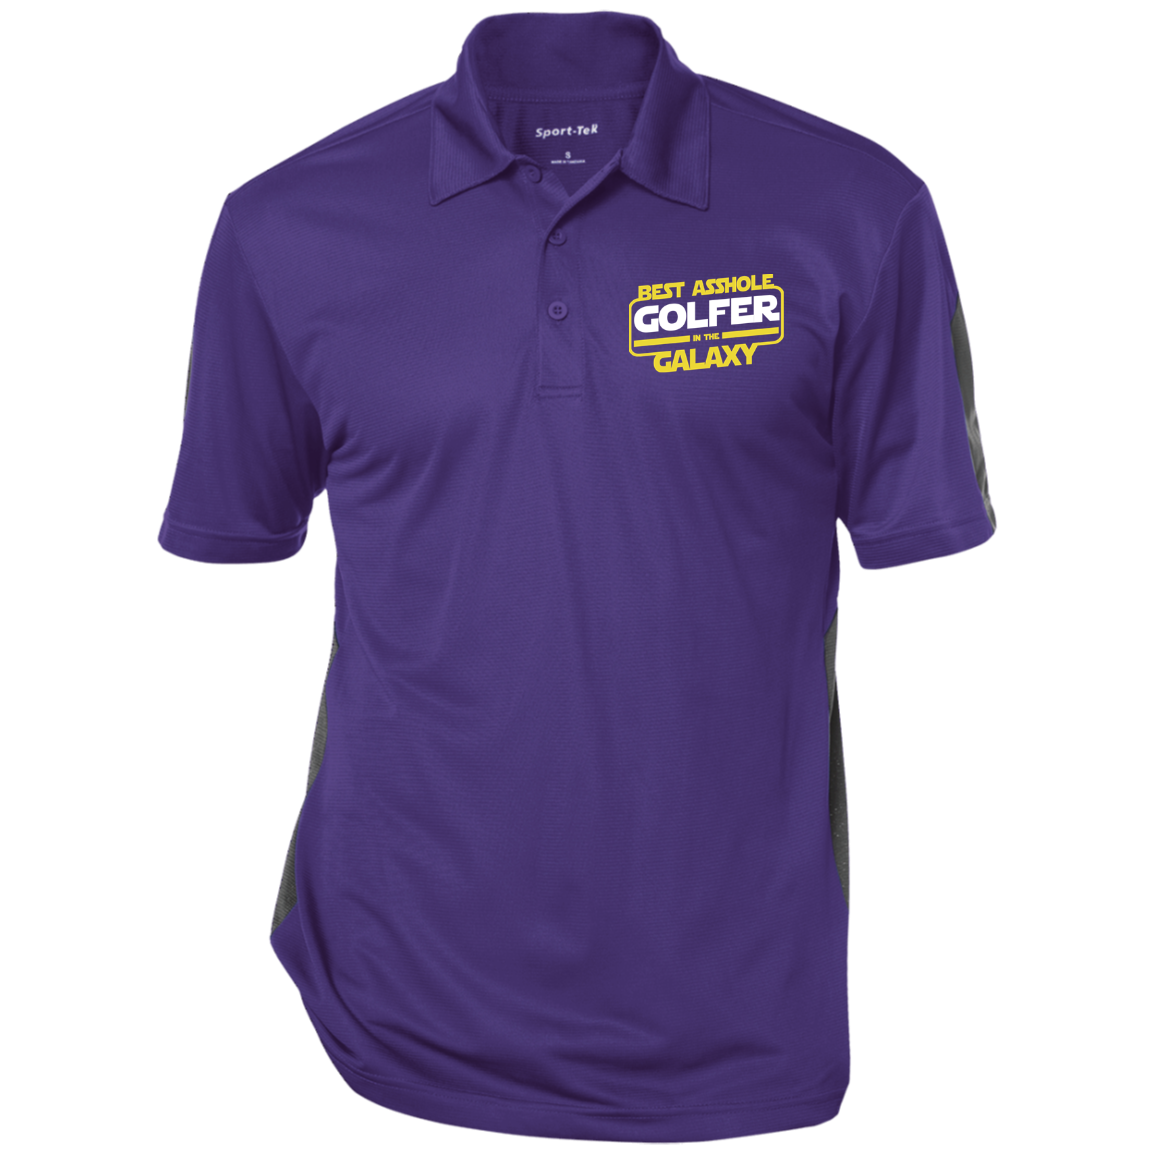 Best Asshole golfer in the galaxy Sport-Tek Performance Textured Three-Button Polo